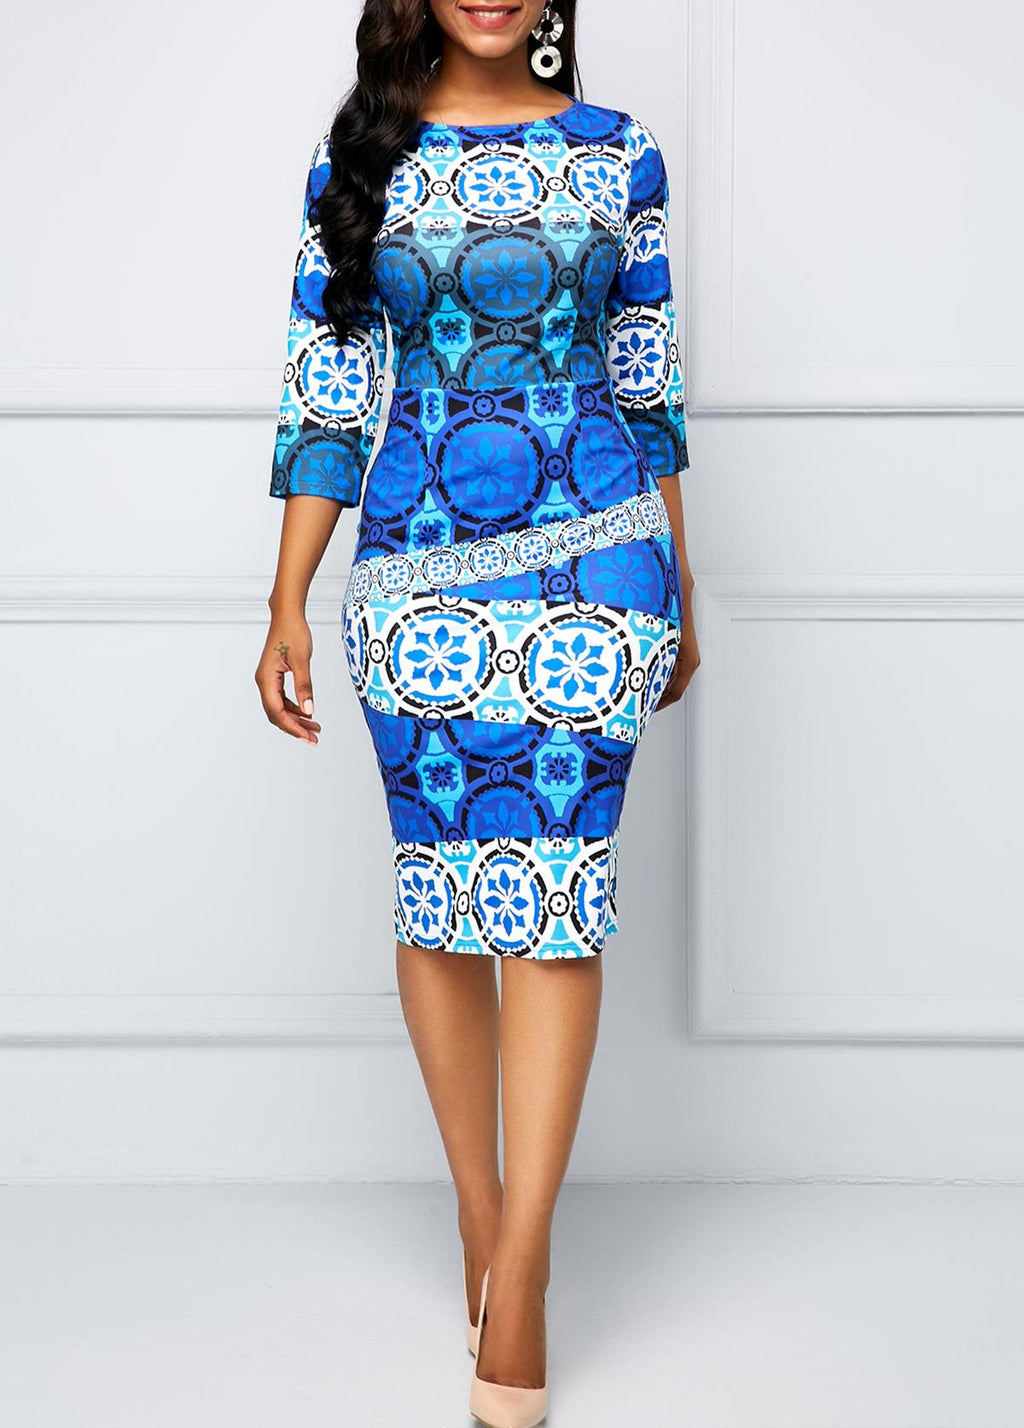 Sky Blue Spring Dress | African Inspired Casual Dress | Vintage Style Dress